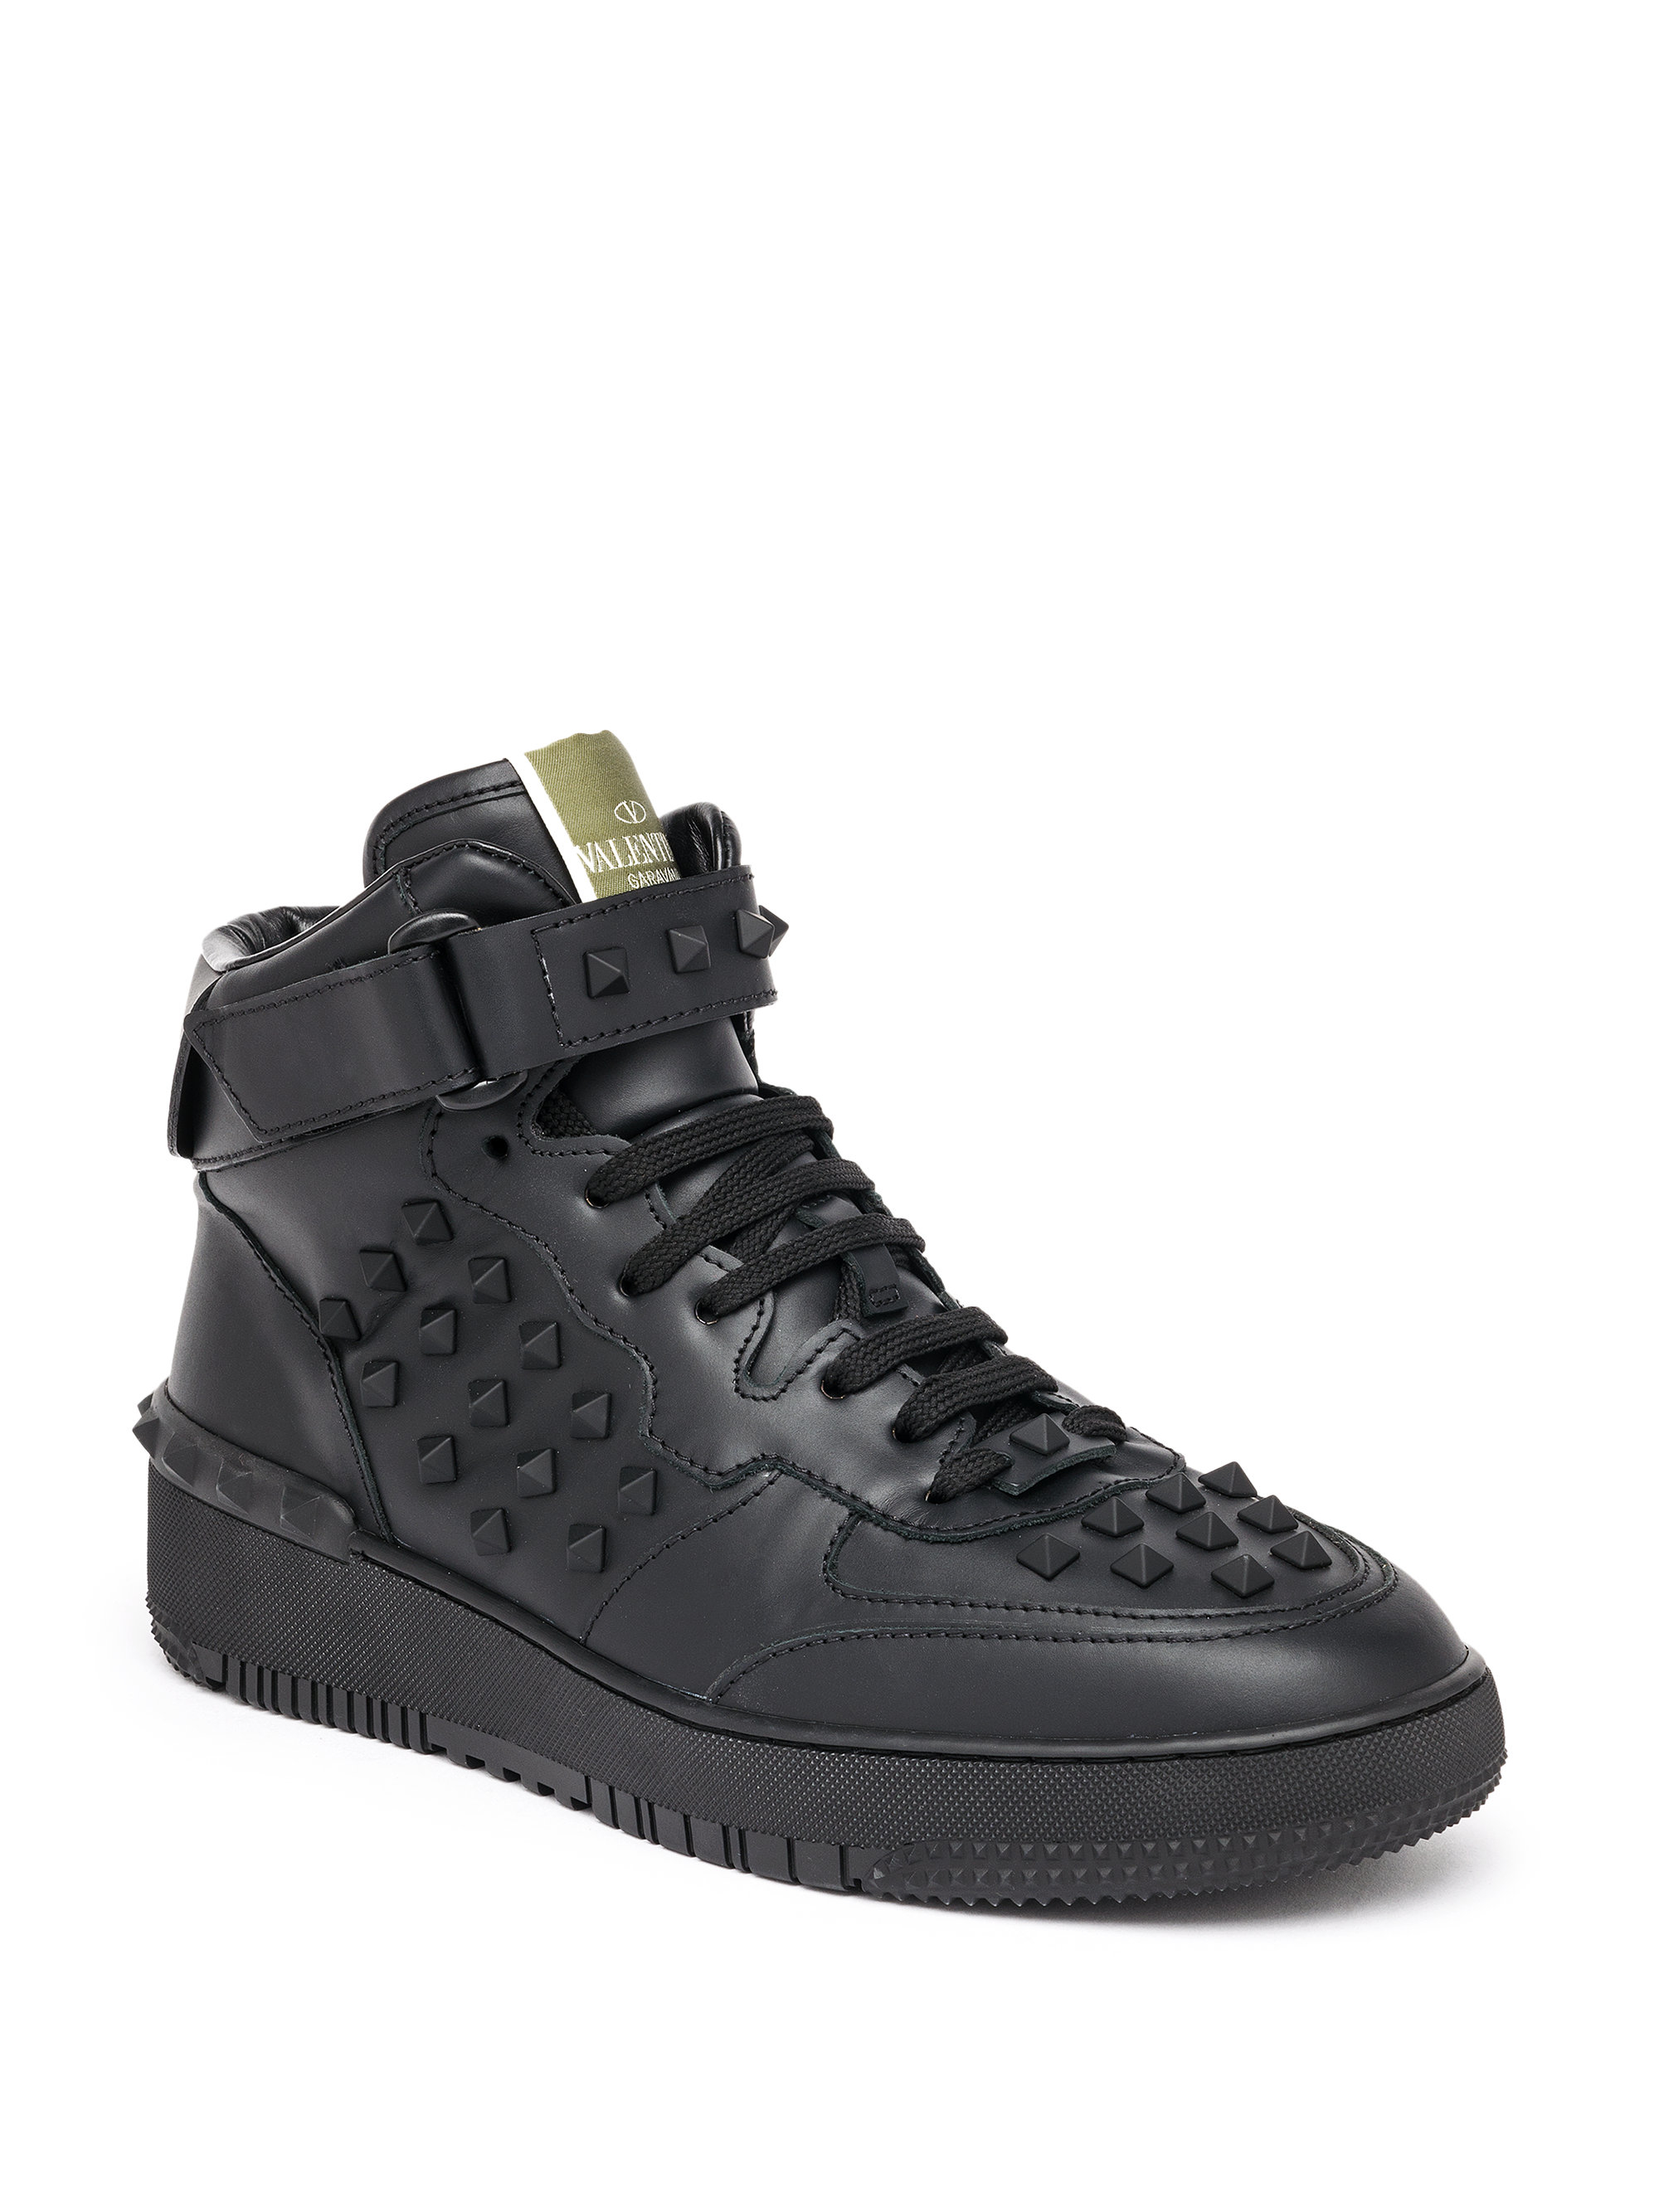 valentino rockstud leather high top sneakers in black for